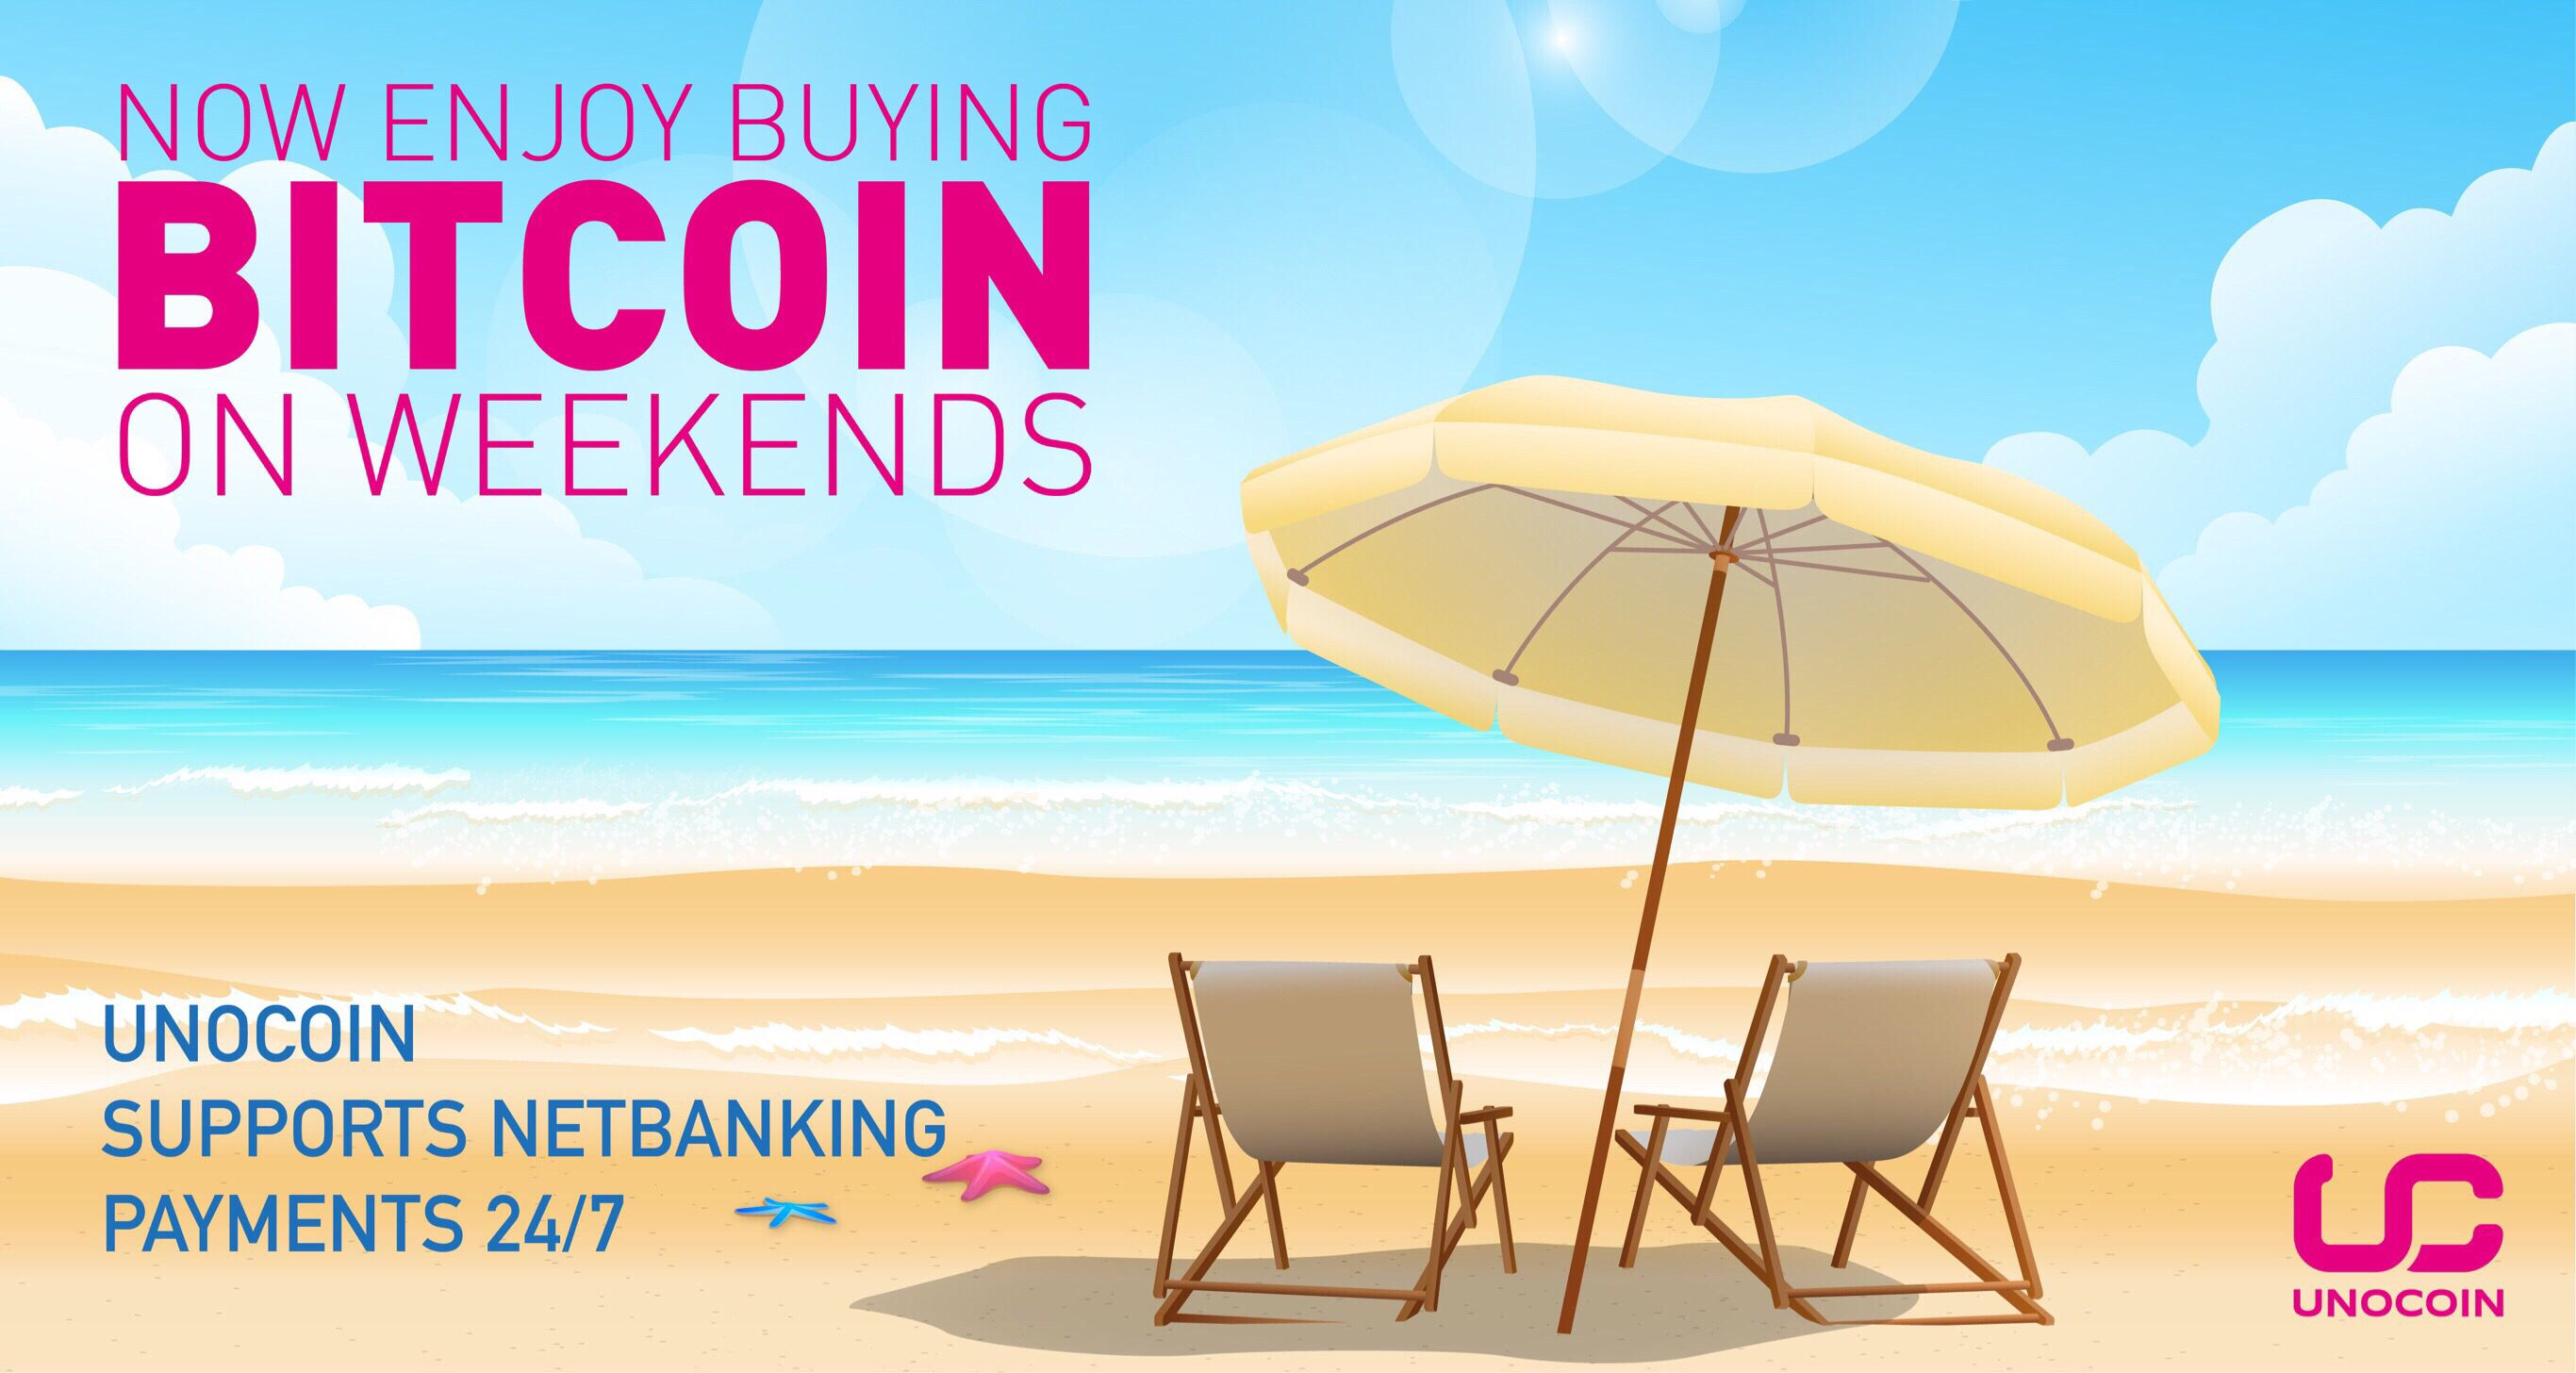 Usebanking To Buy #bitcoin Instantly, Even During The Weekends!  Download Unocoin Mobile